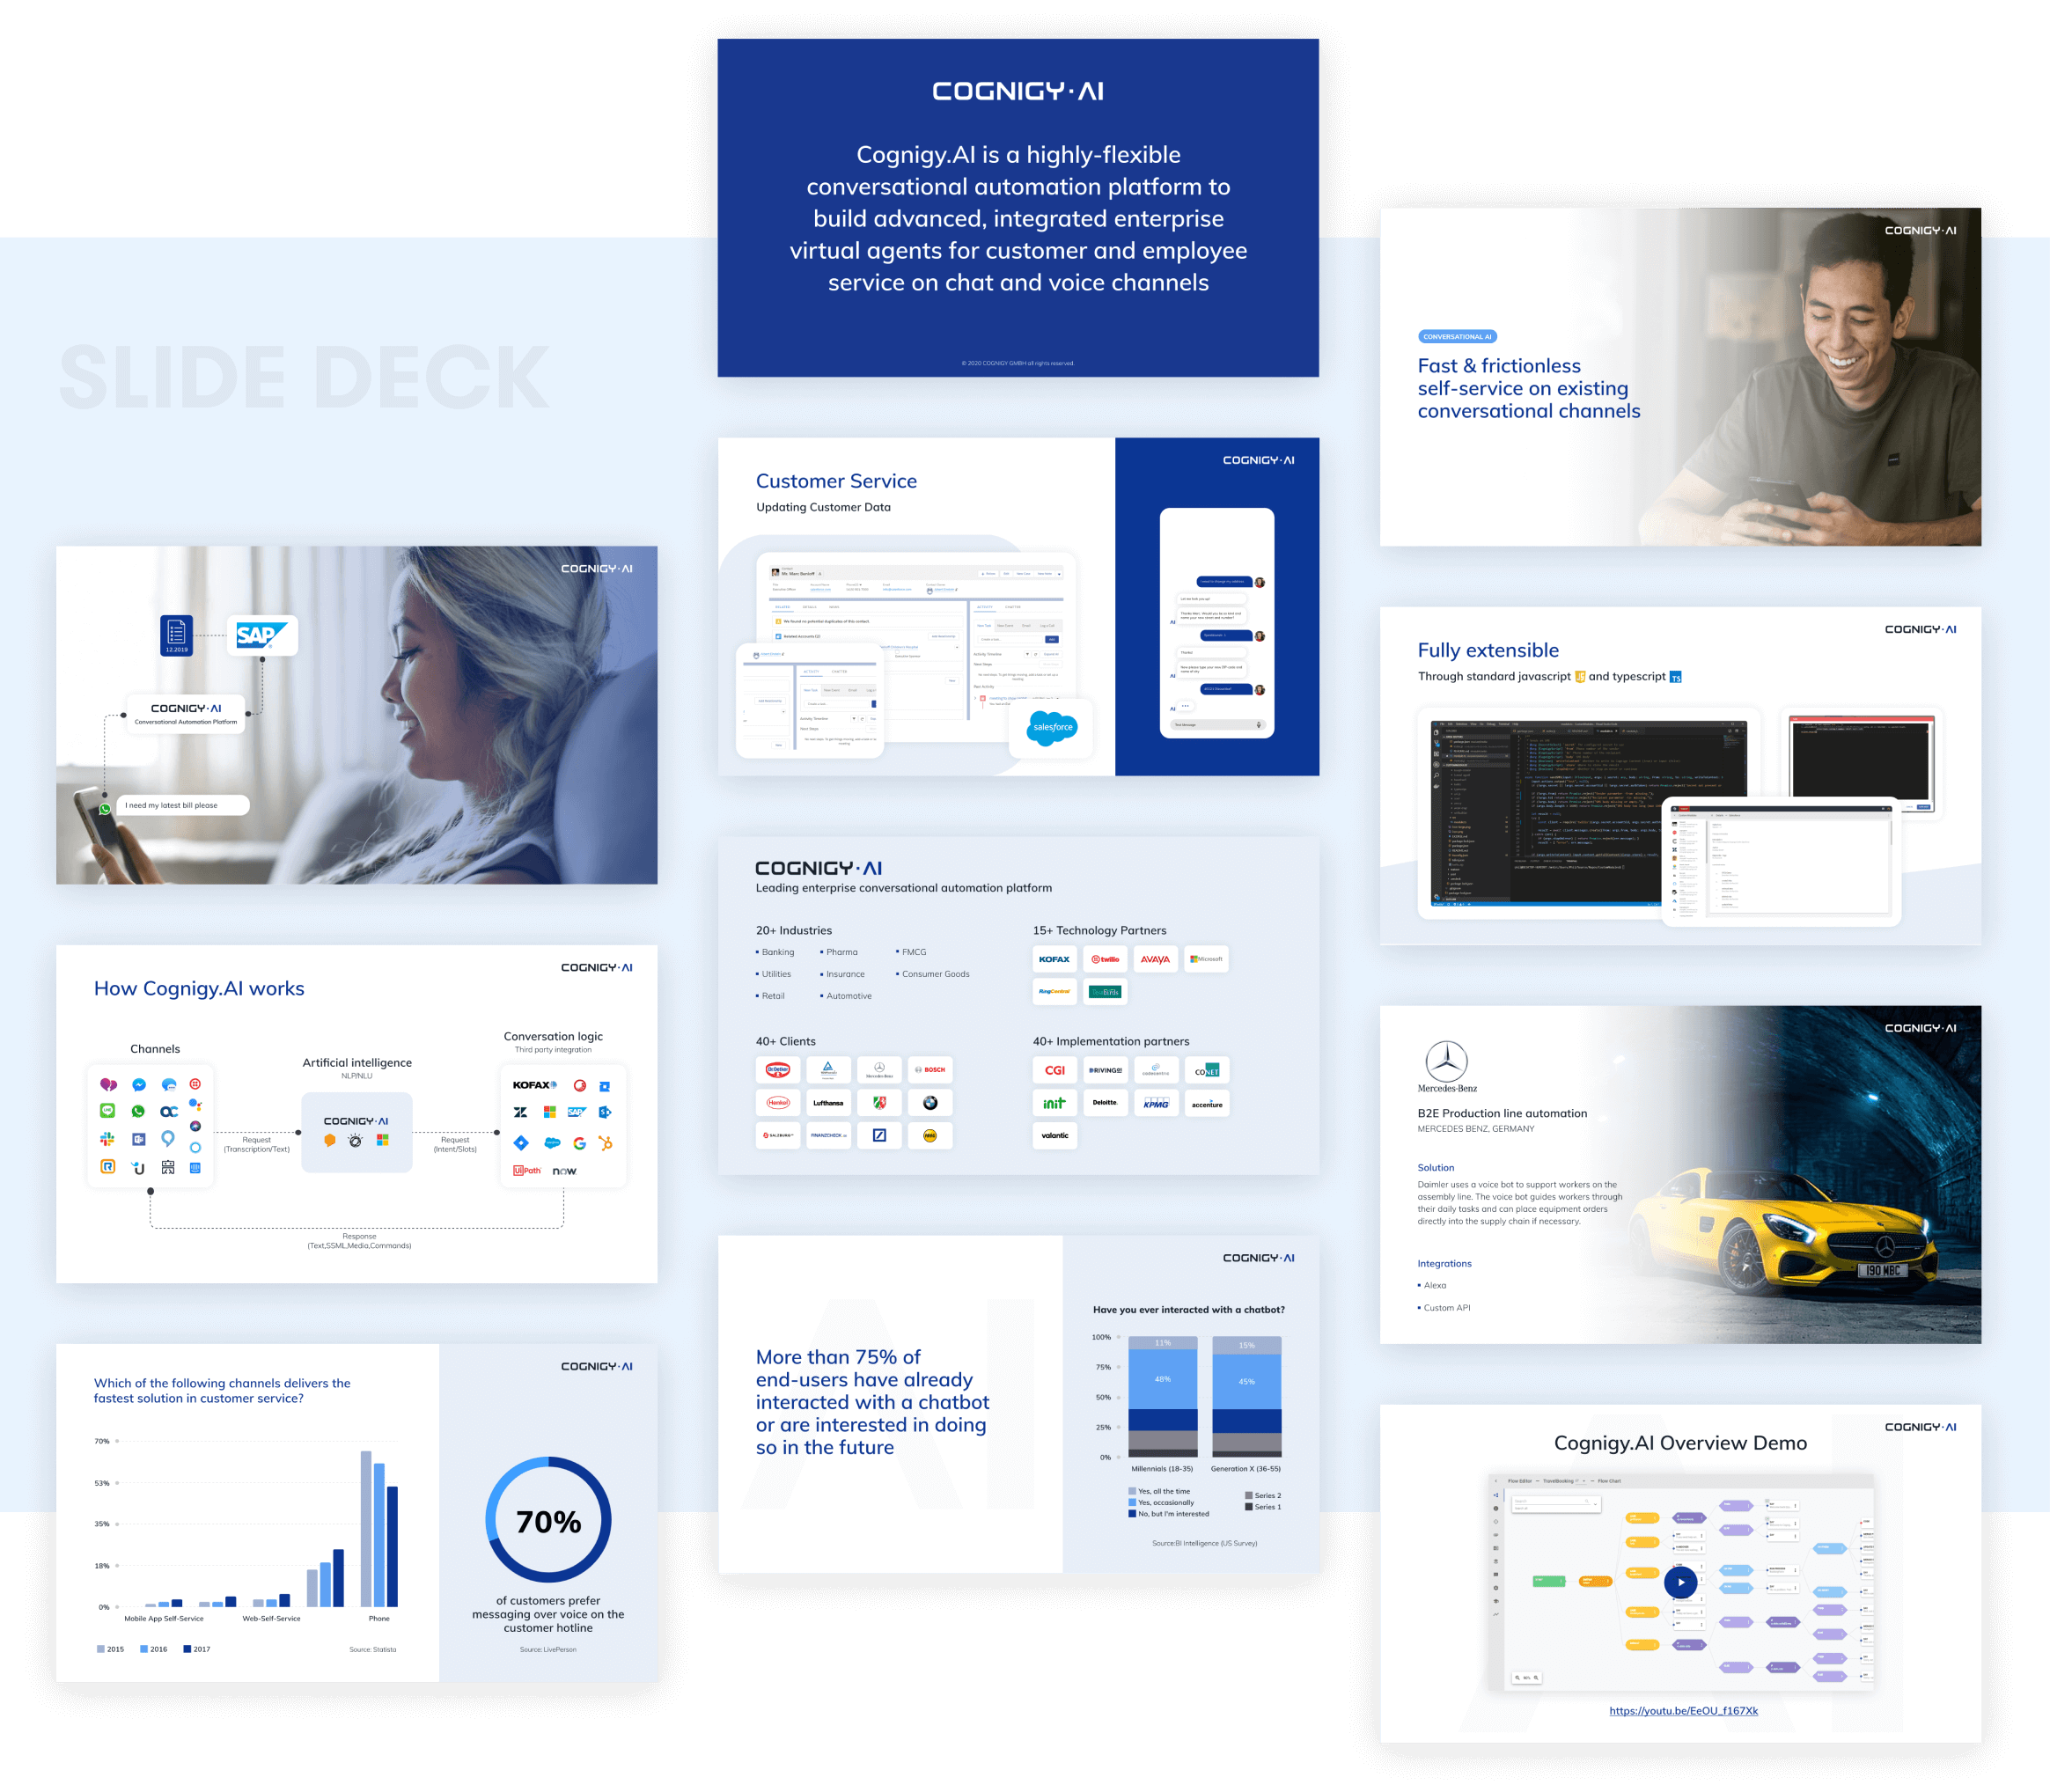 Slide Deck - Cognigy | Website Design and Development by wowdesign